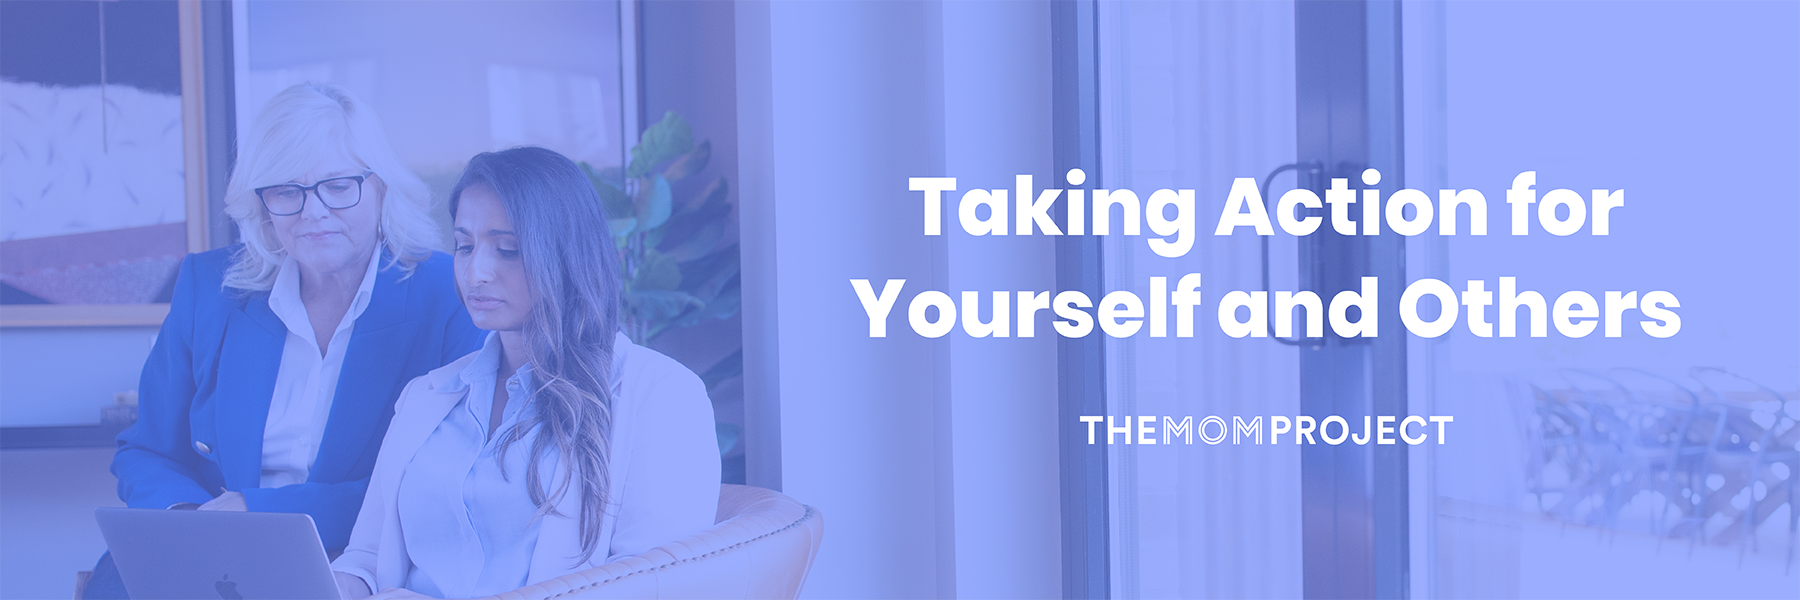 Taking Action for Yourself and Others